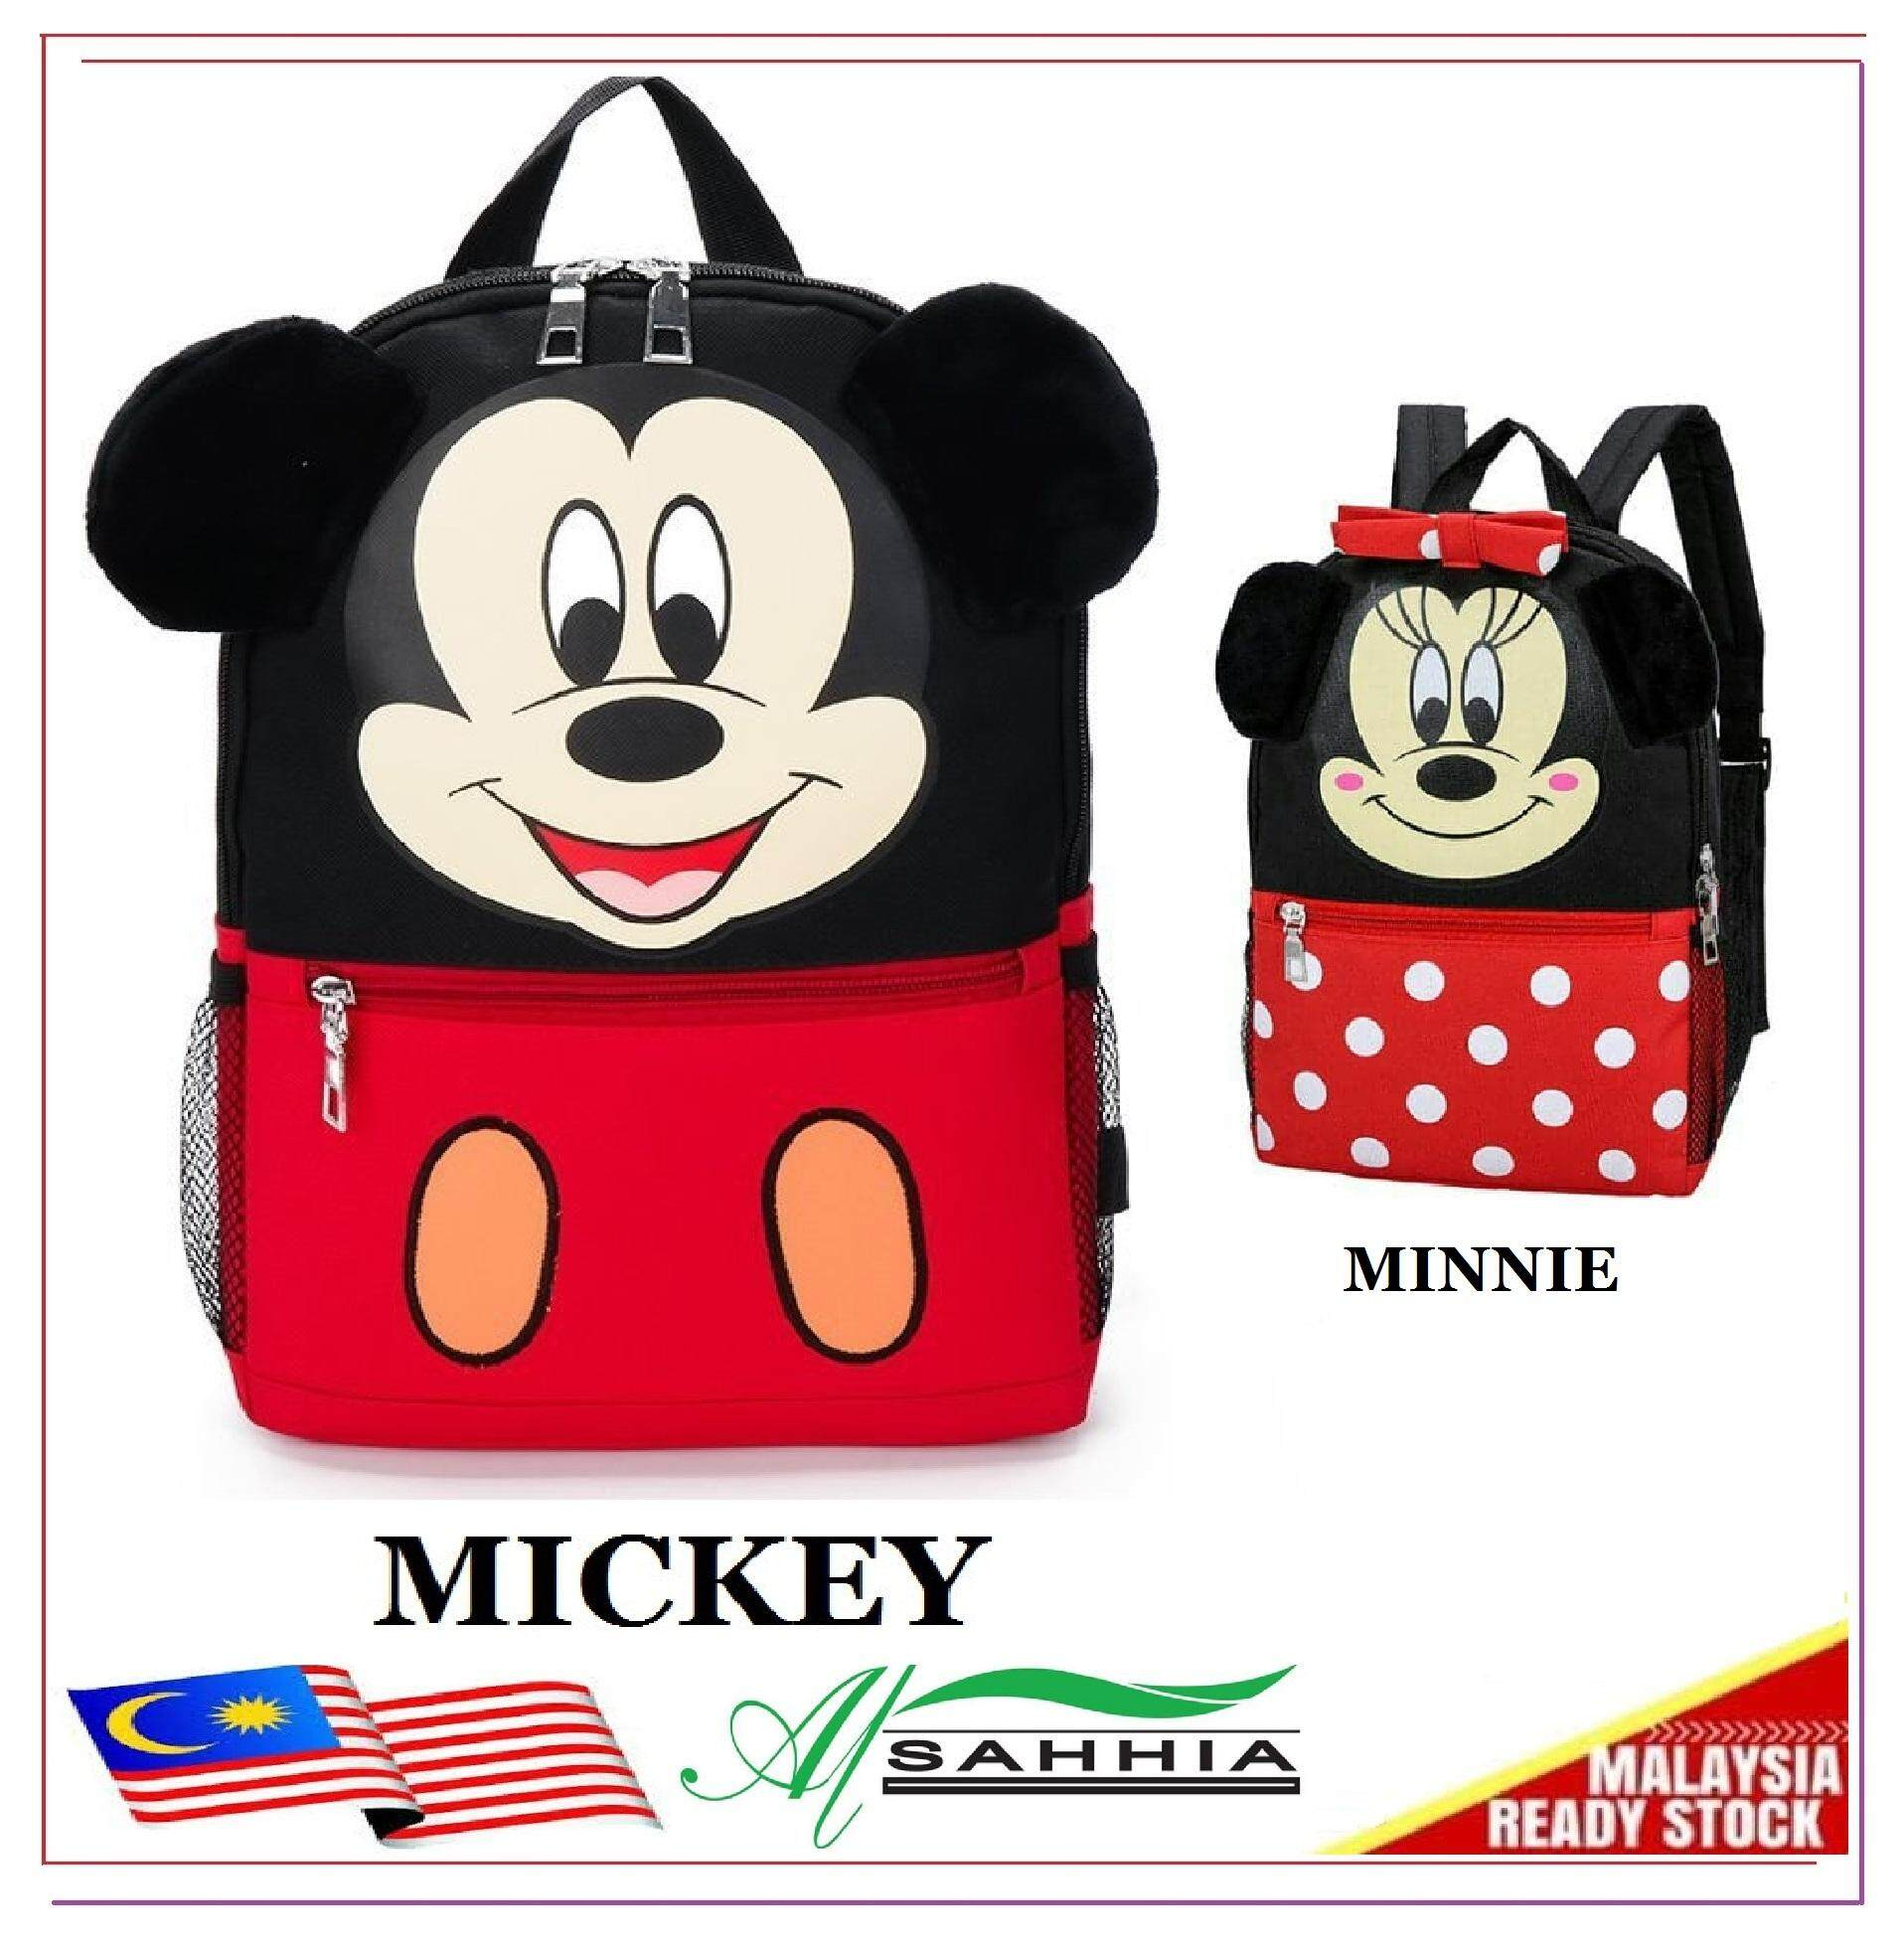 98aa31f3c 4P2 Al Sahhia Ready Stock Mickey Minnie School Bag Backpack Travel Casual